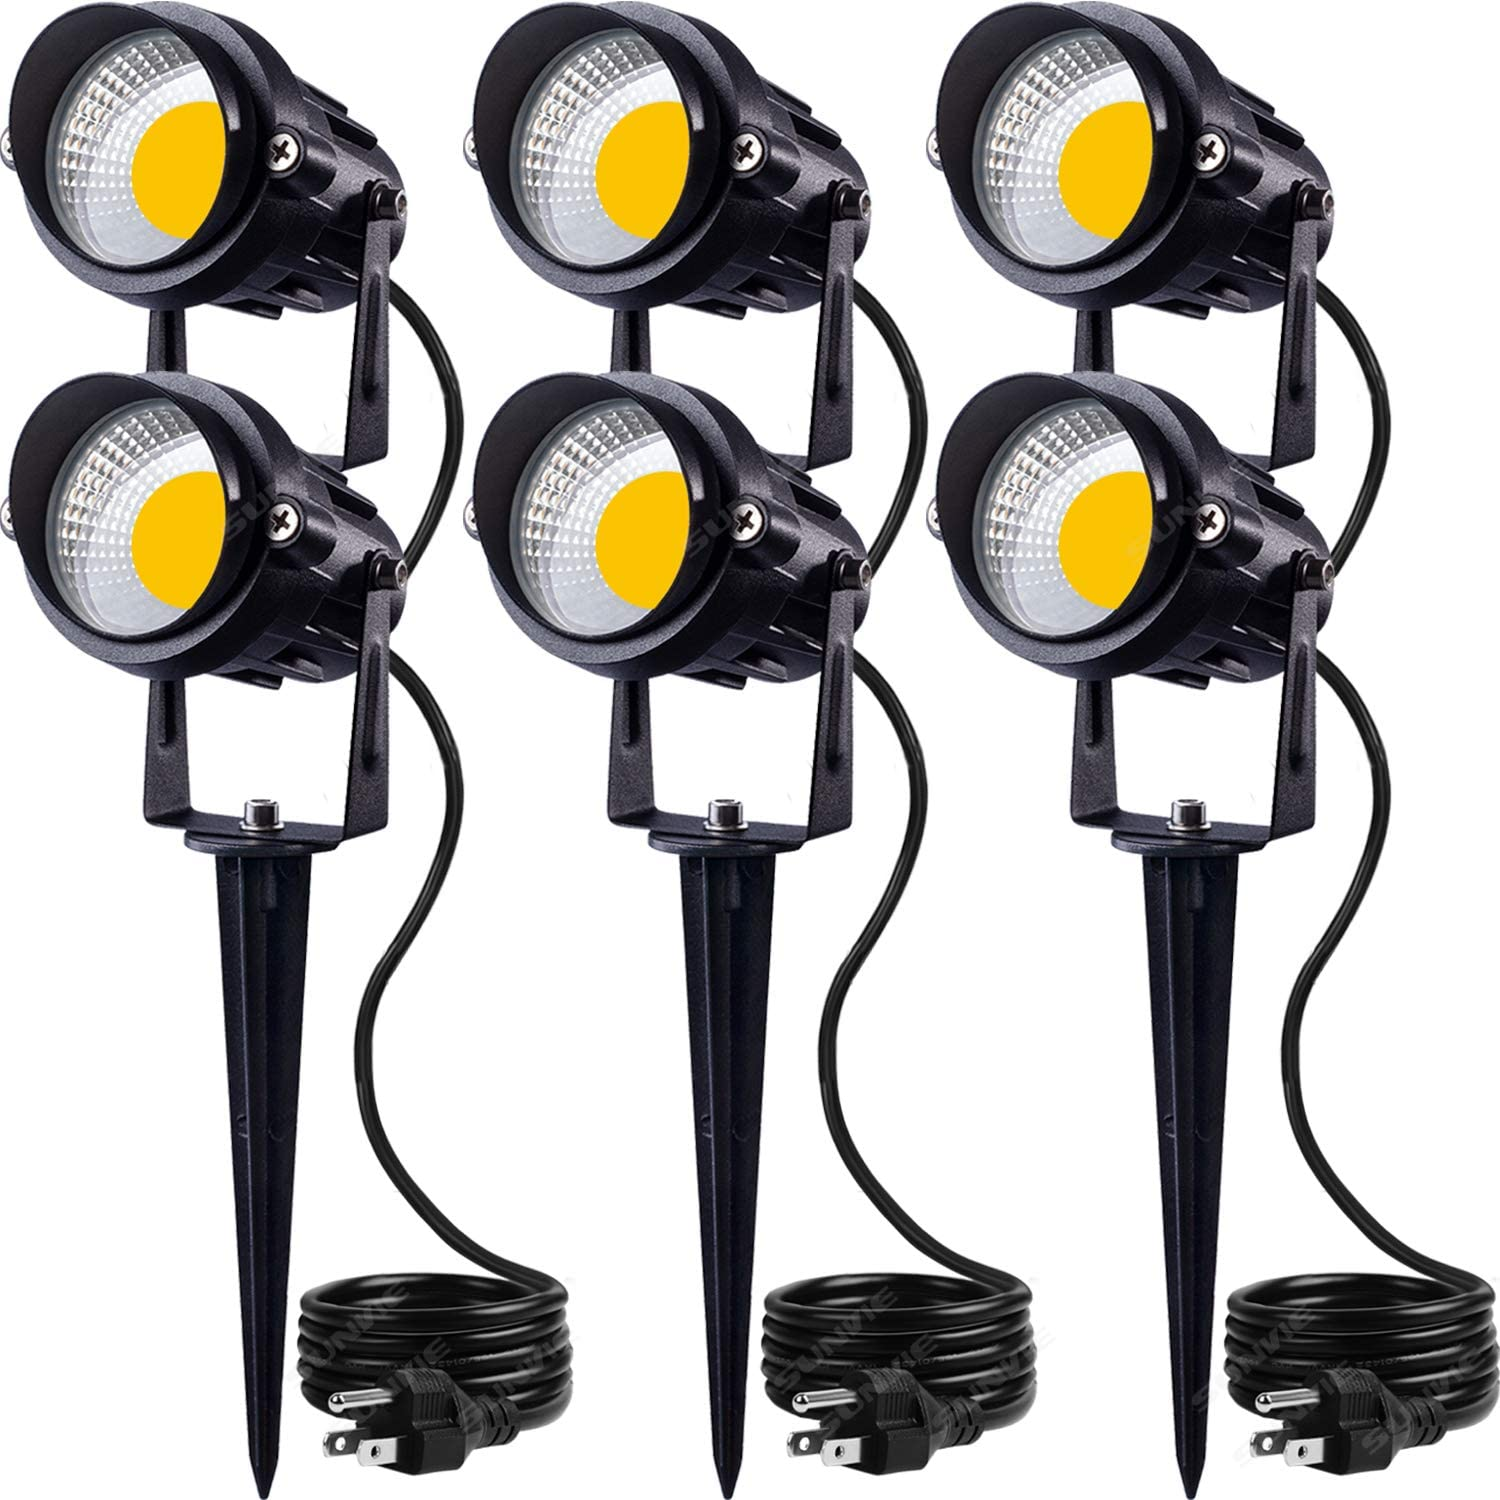 SUNVIE LED Outdoor Spotlight 12W Landscape Lighting 120V AC Waterproof Landscape Lights Spot Lights for Yard with Spiked Stake Warm White Flag Lights Garden Decorative Lamp with US 3-Plug in (6 Pack)